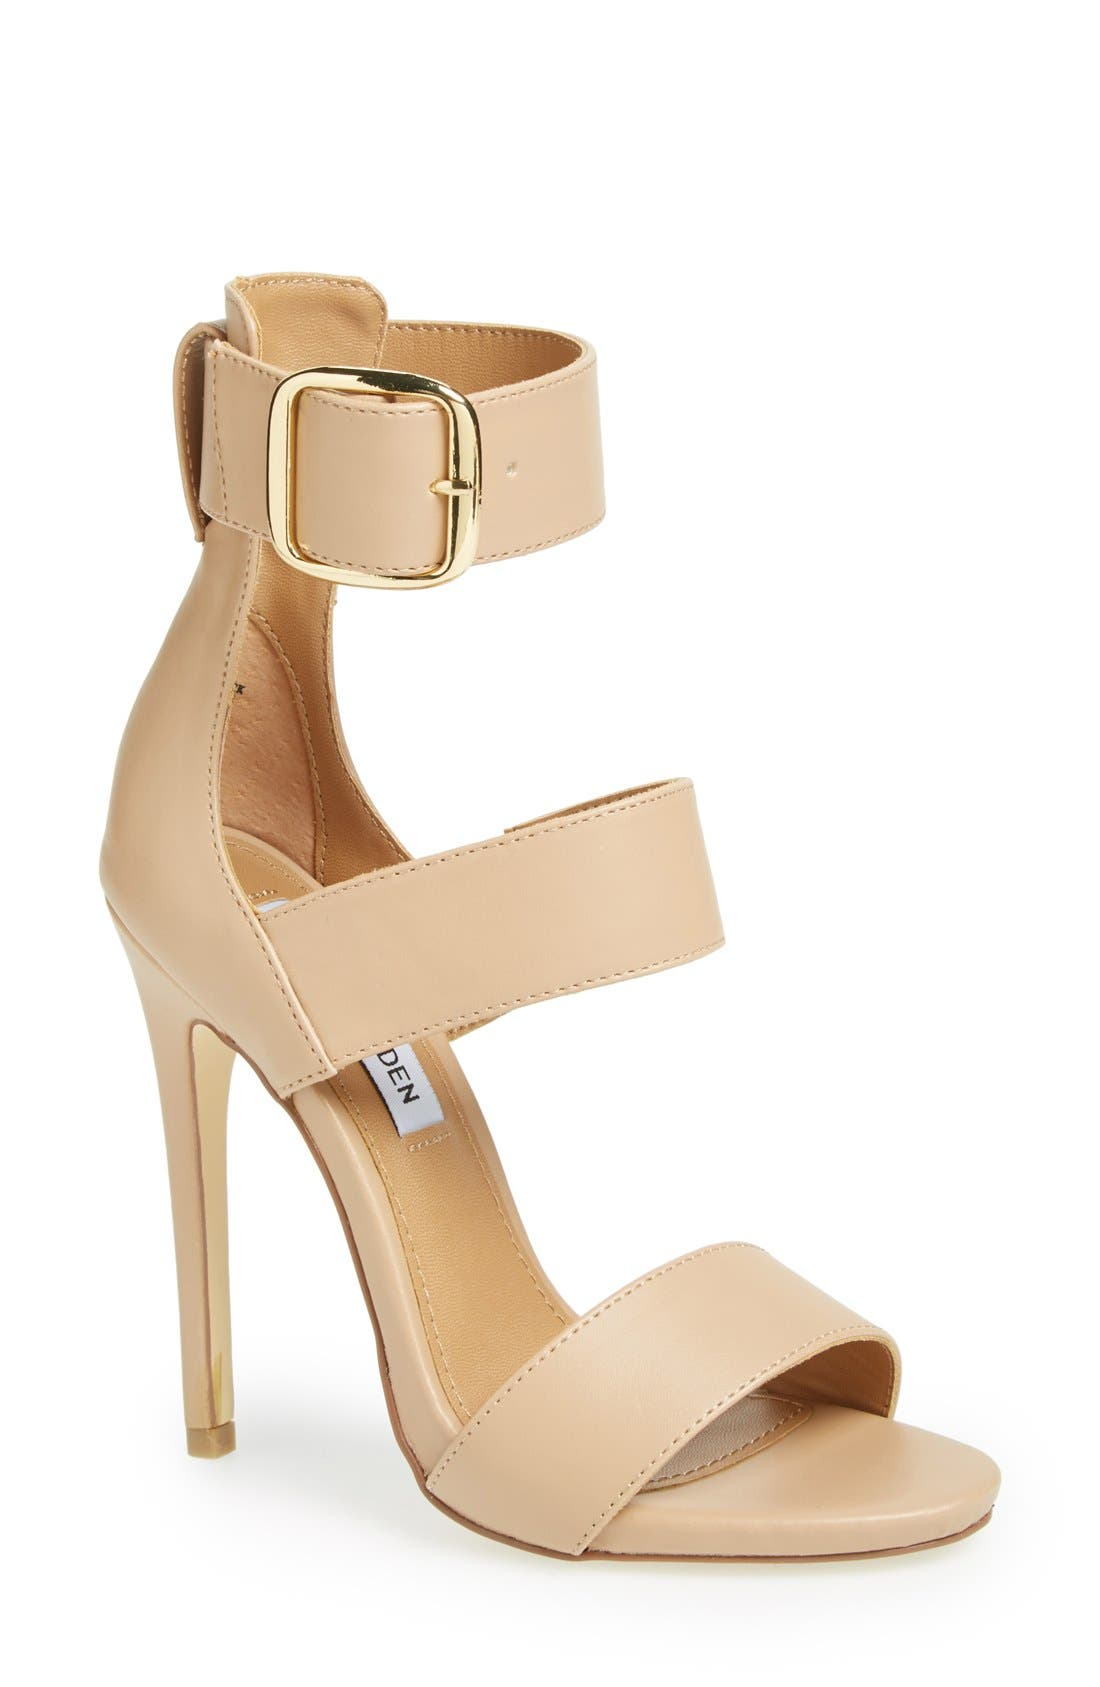 Alternate Image 1 Selected - Steve Madden 'Mysterii' Ankle Strap Sandal